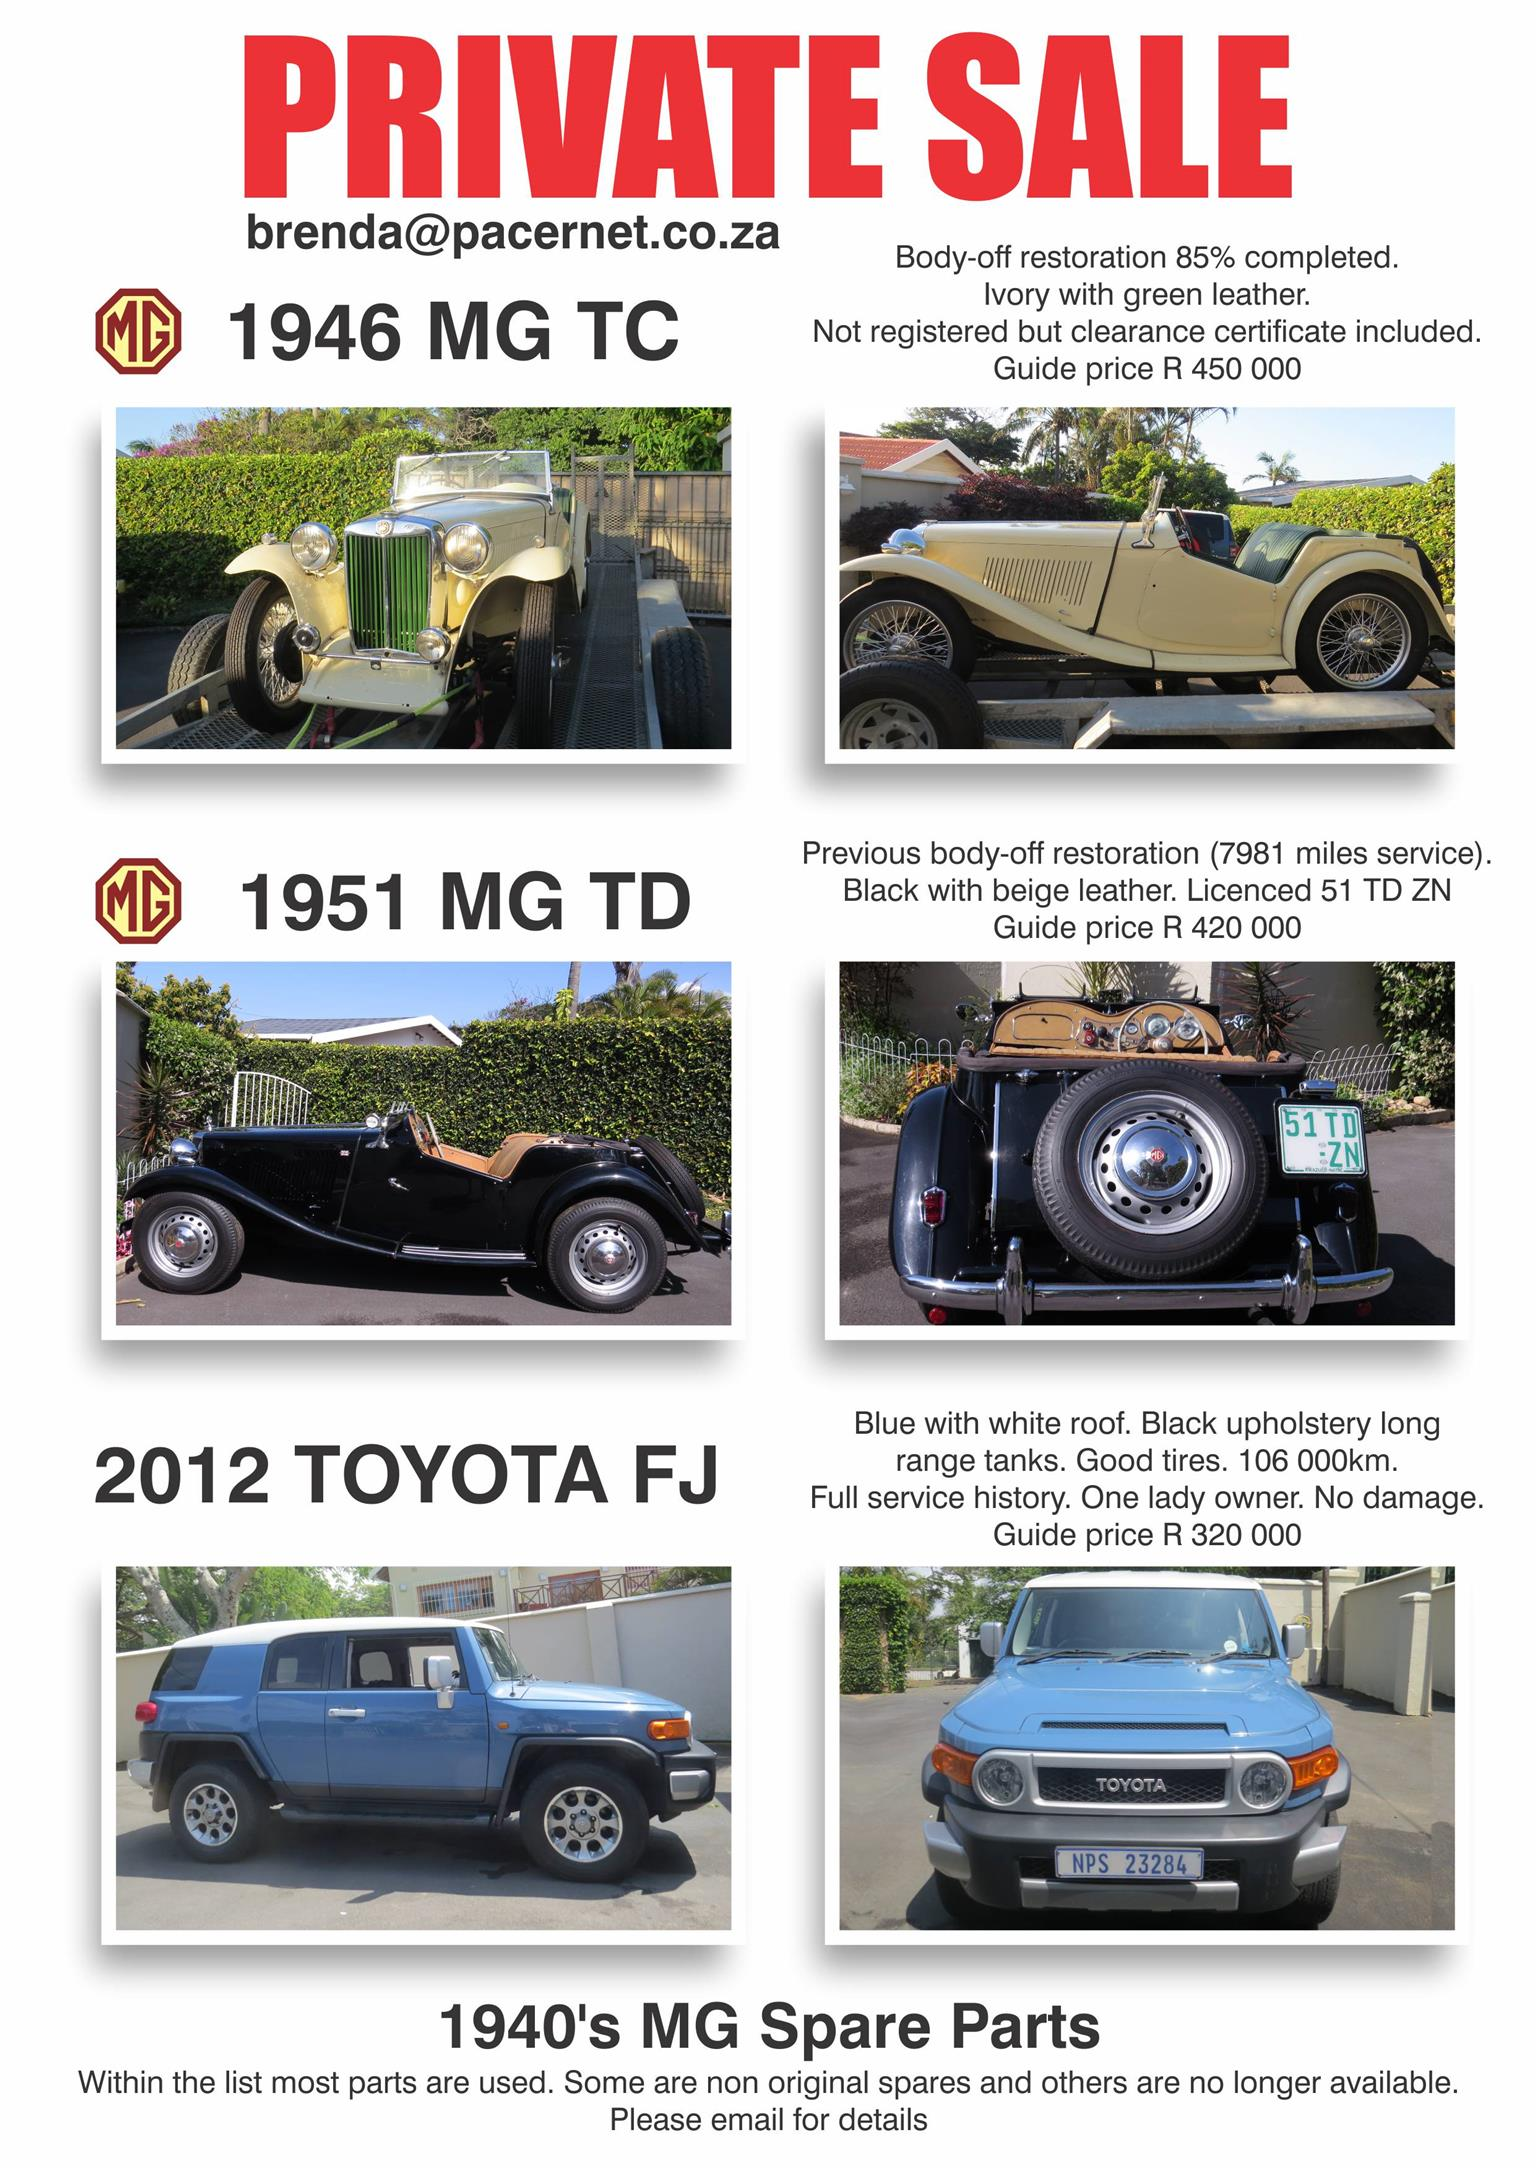 Fj land cruiser parts user user manuals user manuals toyota fj40 land cruiser array 2012 toyota fj cruiser junk mail rh junkmail fandeluxe Image collections